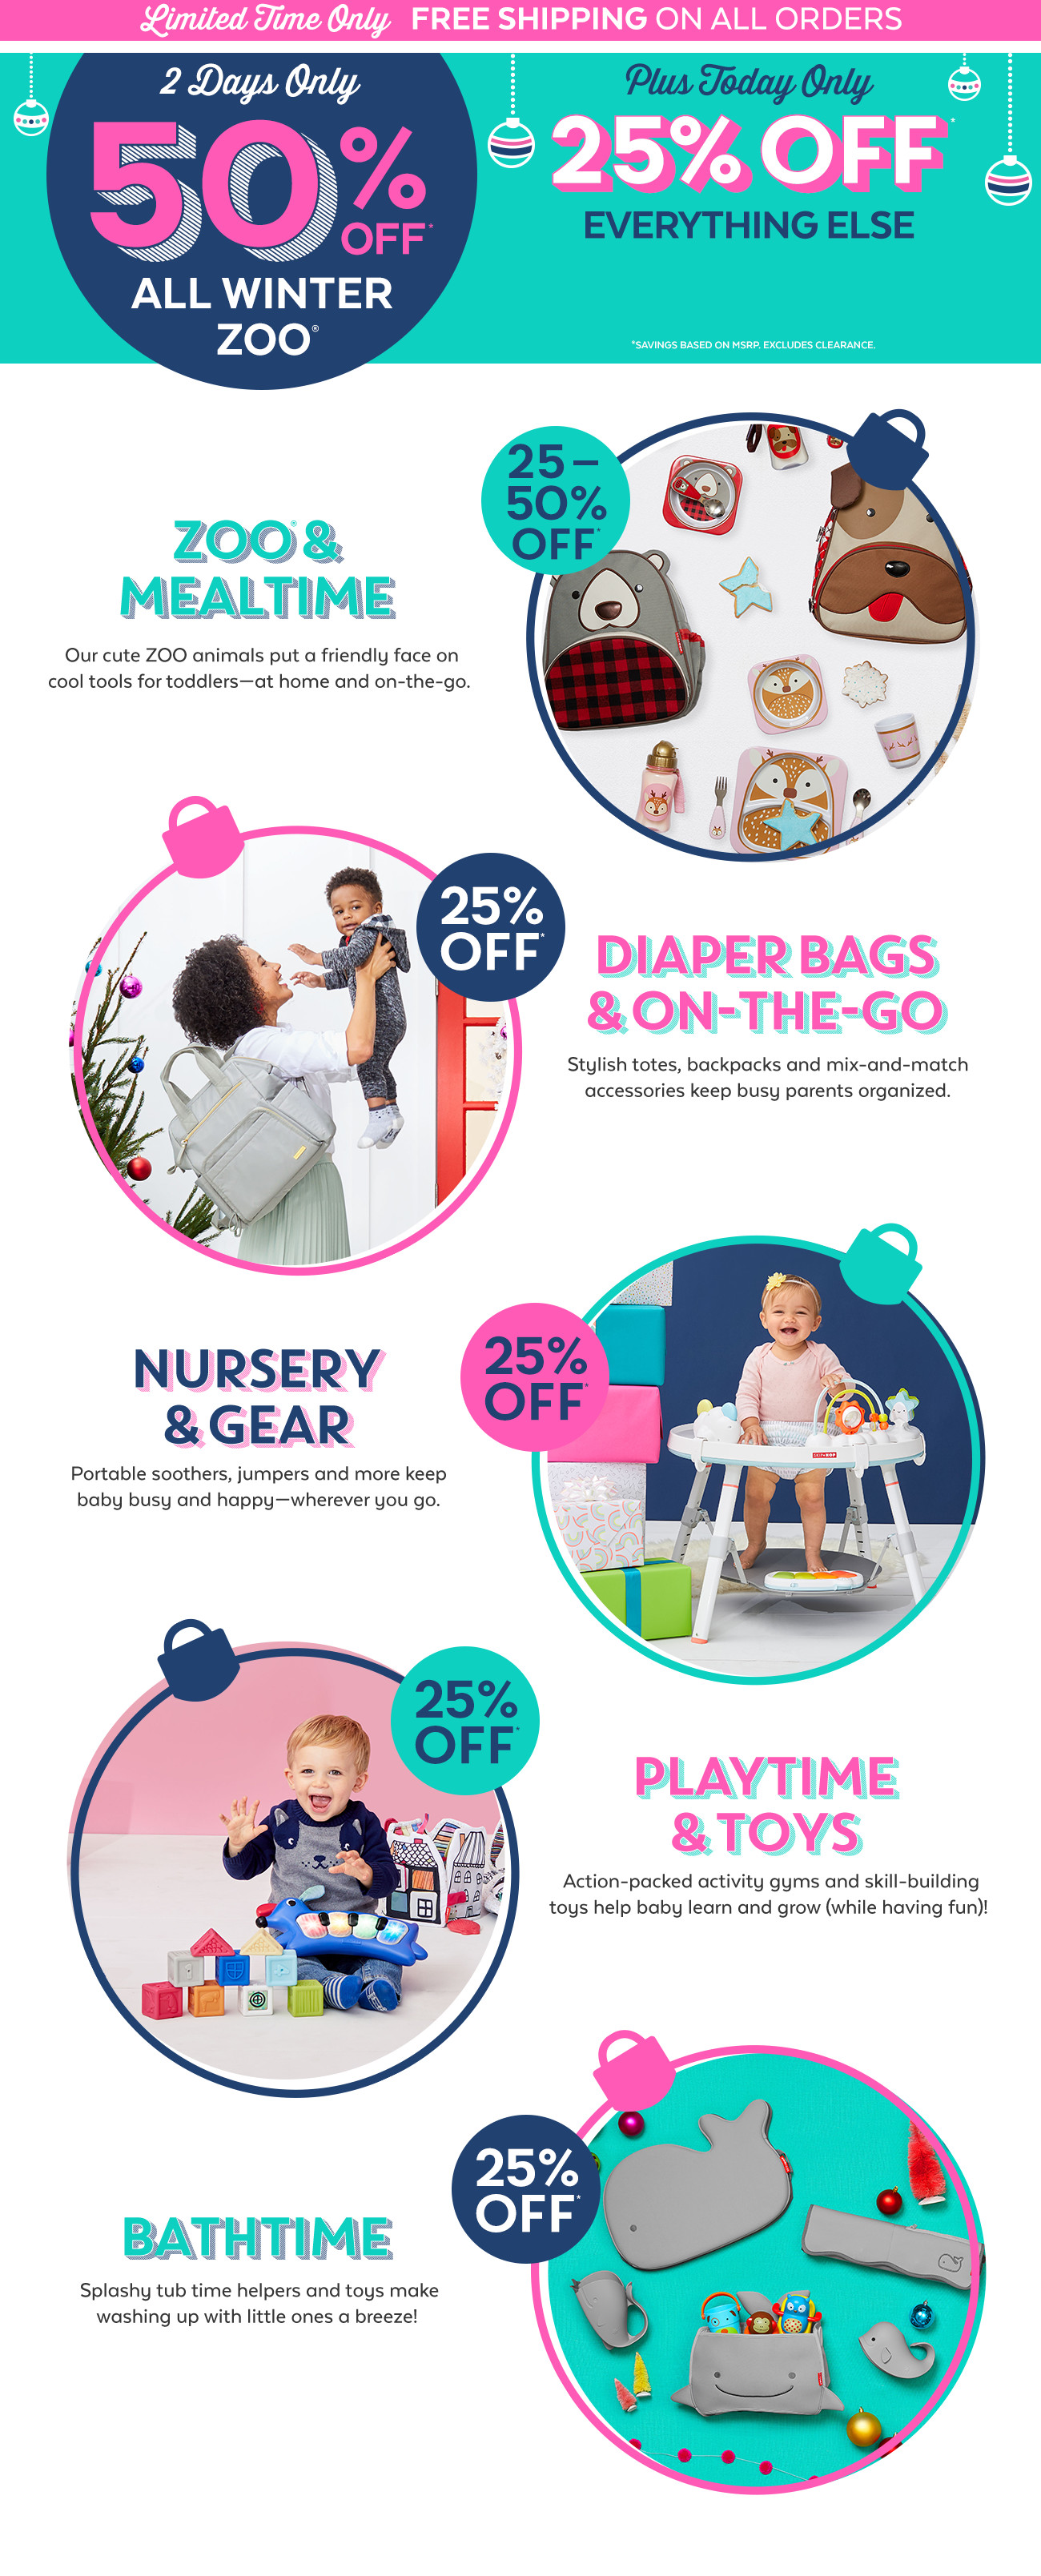 2 days only 50% off All winter Zoo | Plus today only 25% off everything else| Zoo & mealtime | Diaper bags & on-the-go | Nursery & gear | Playtime & toys | Bathtime |